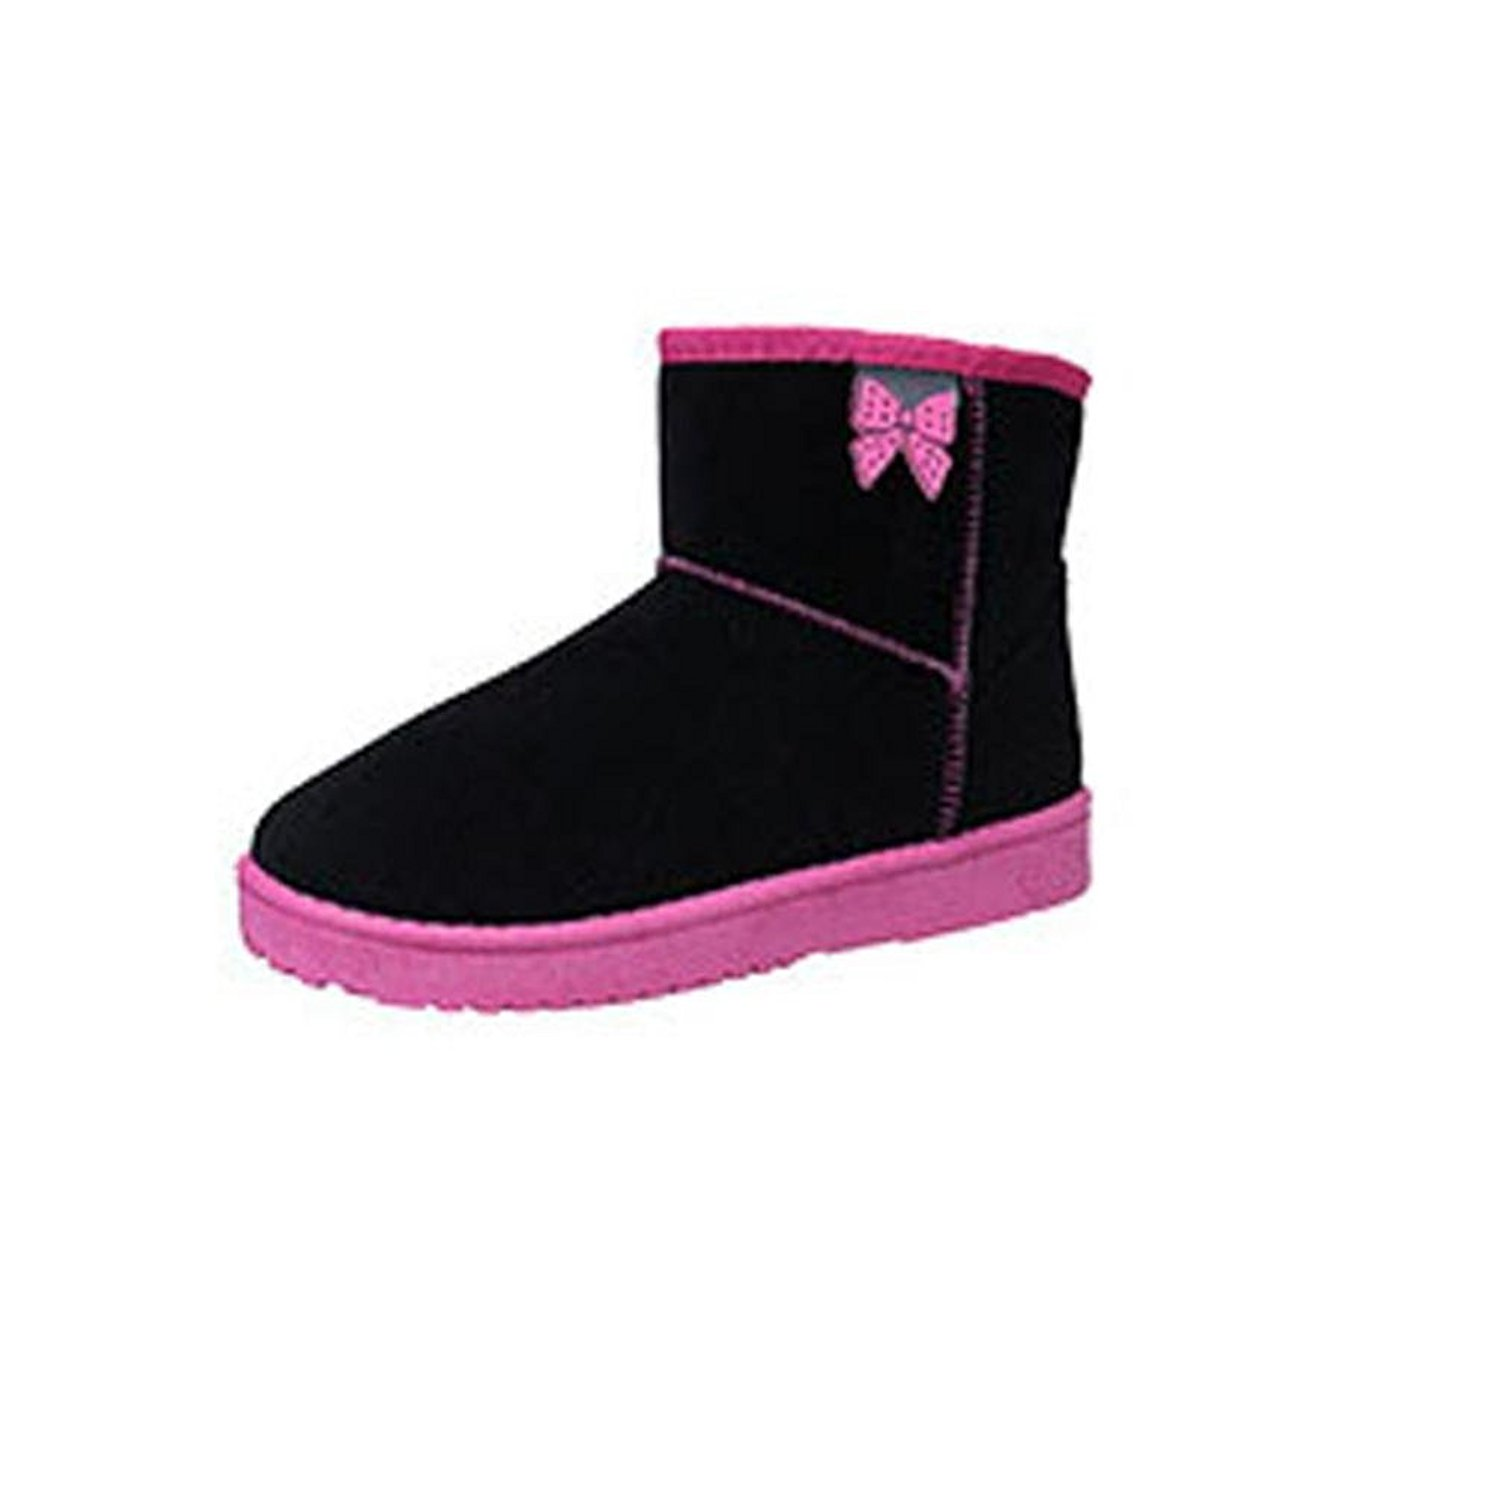 DEESEE(TM) Women Ankle Boots Fur Lined Winter Autumn Warm Snow Boots Shoes (US 5.5, Black)